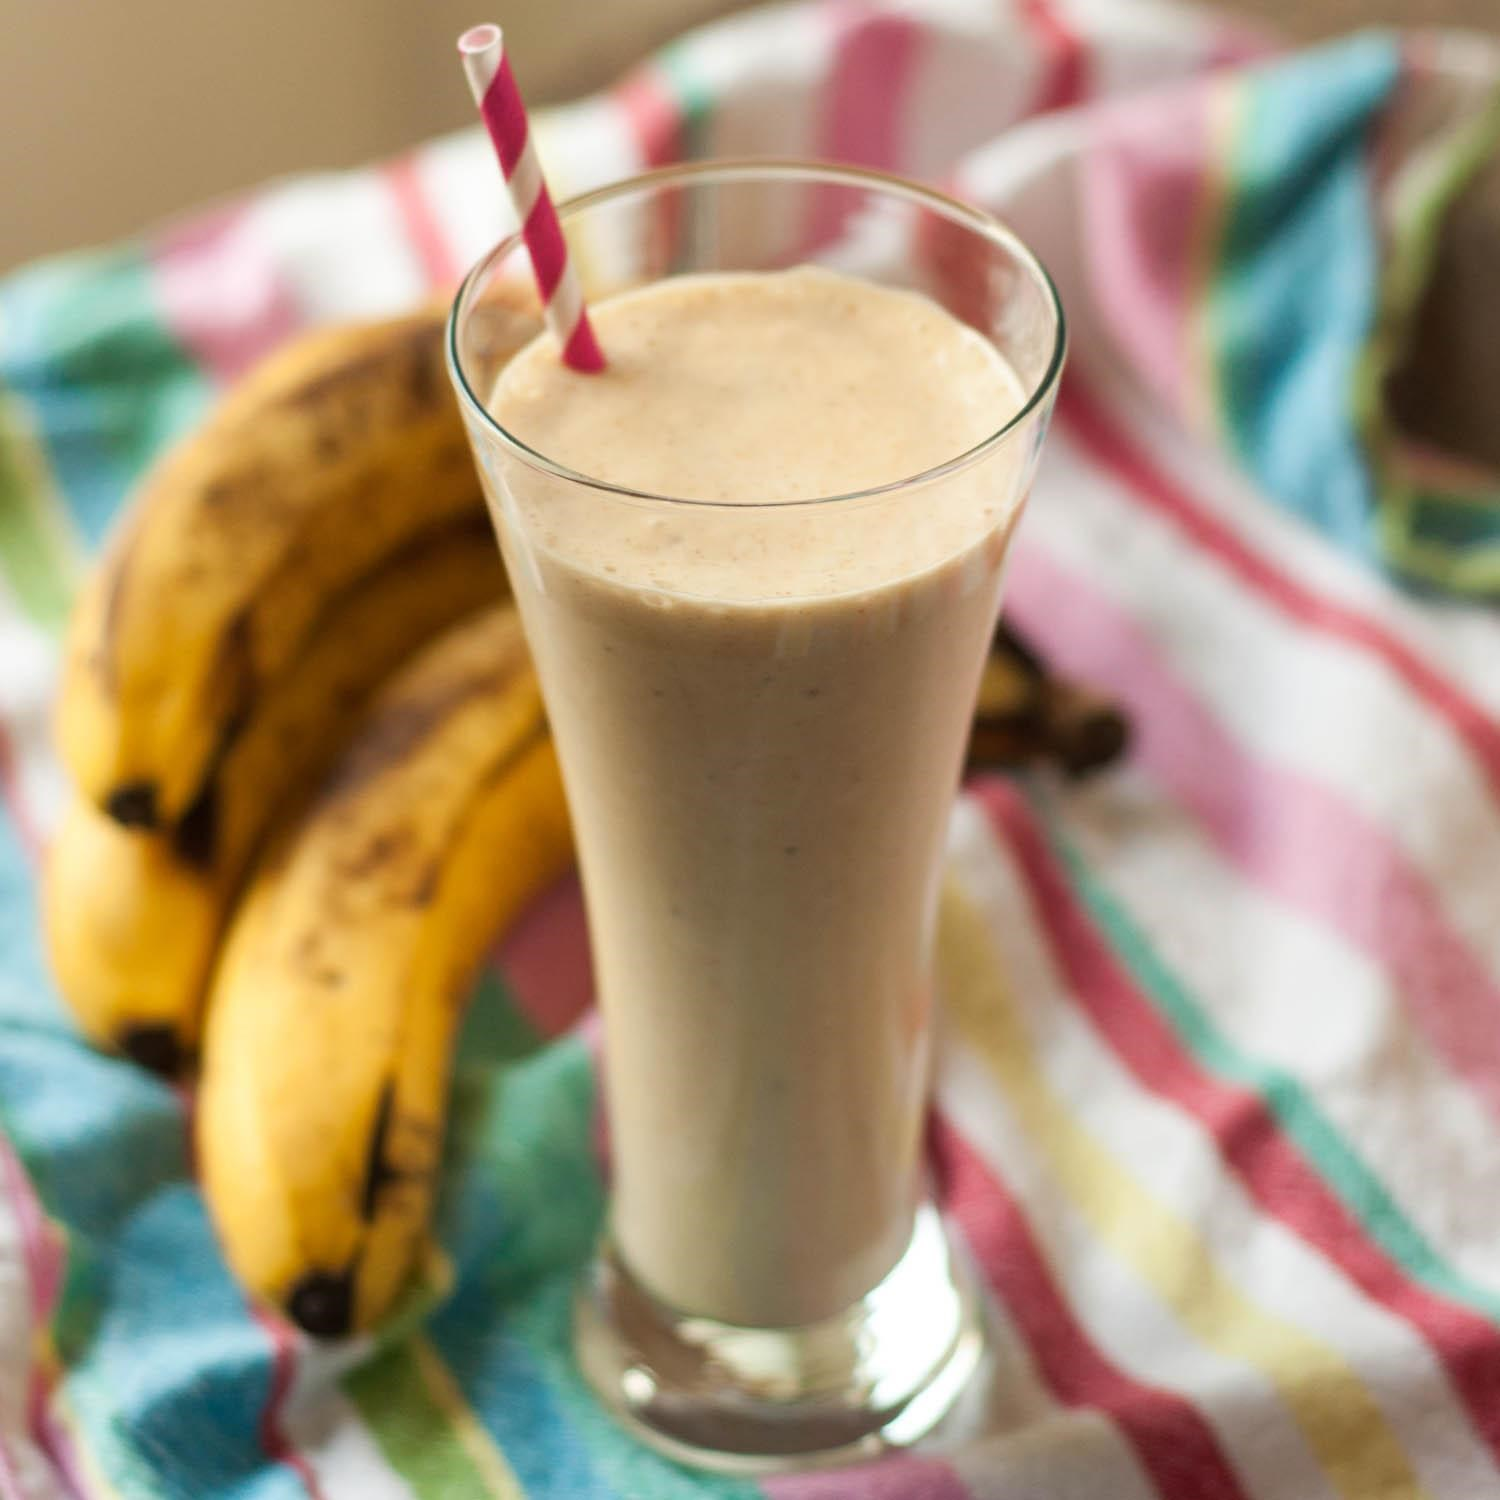 1011848_Peanut-Butter-Banana-Smoothie_Photo-by-Angie-Seaman.jpg